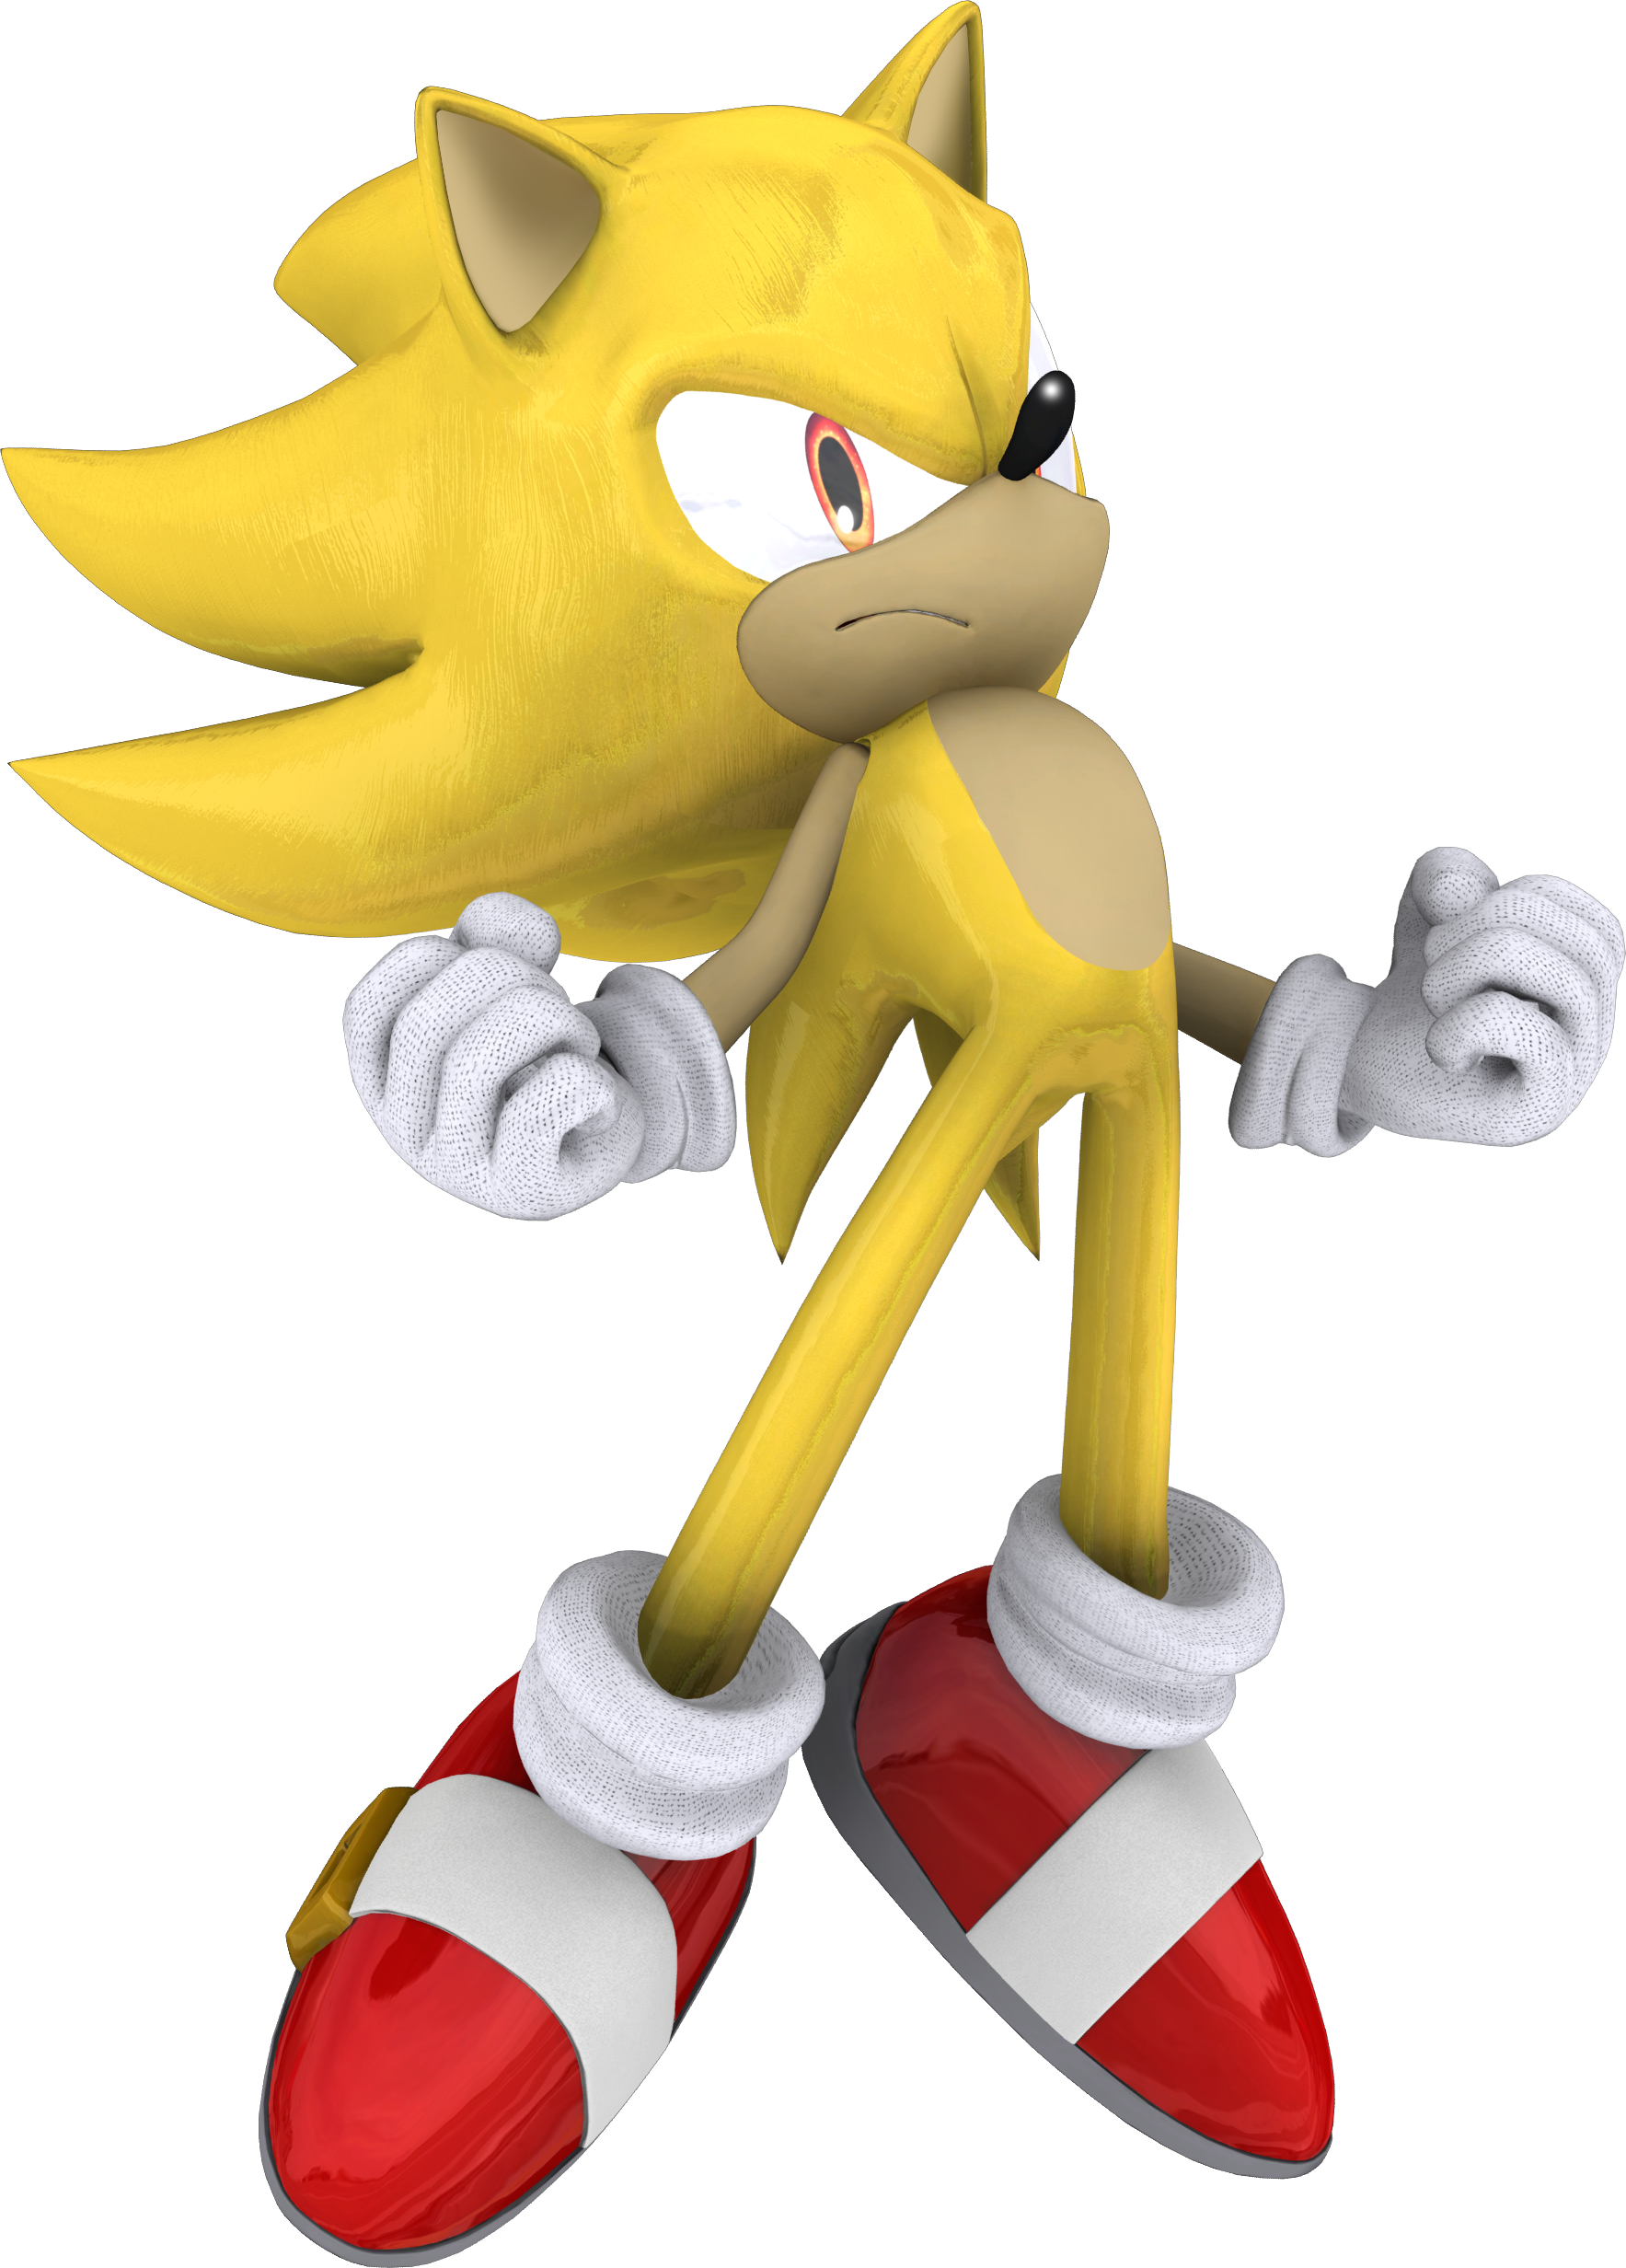 Super Sonic The Hedgehog Game Download